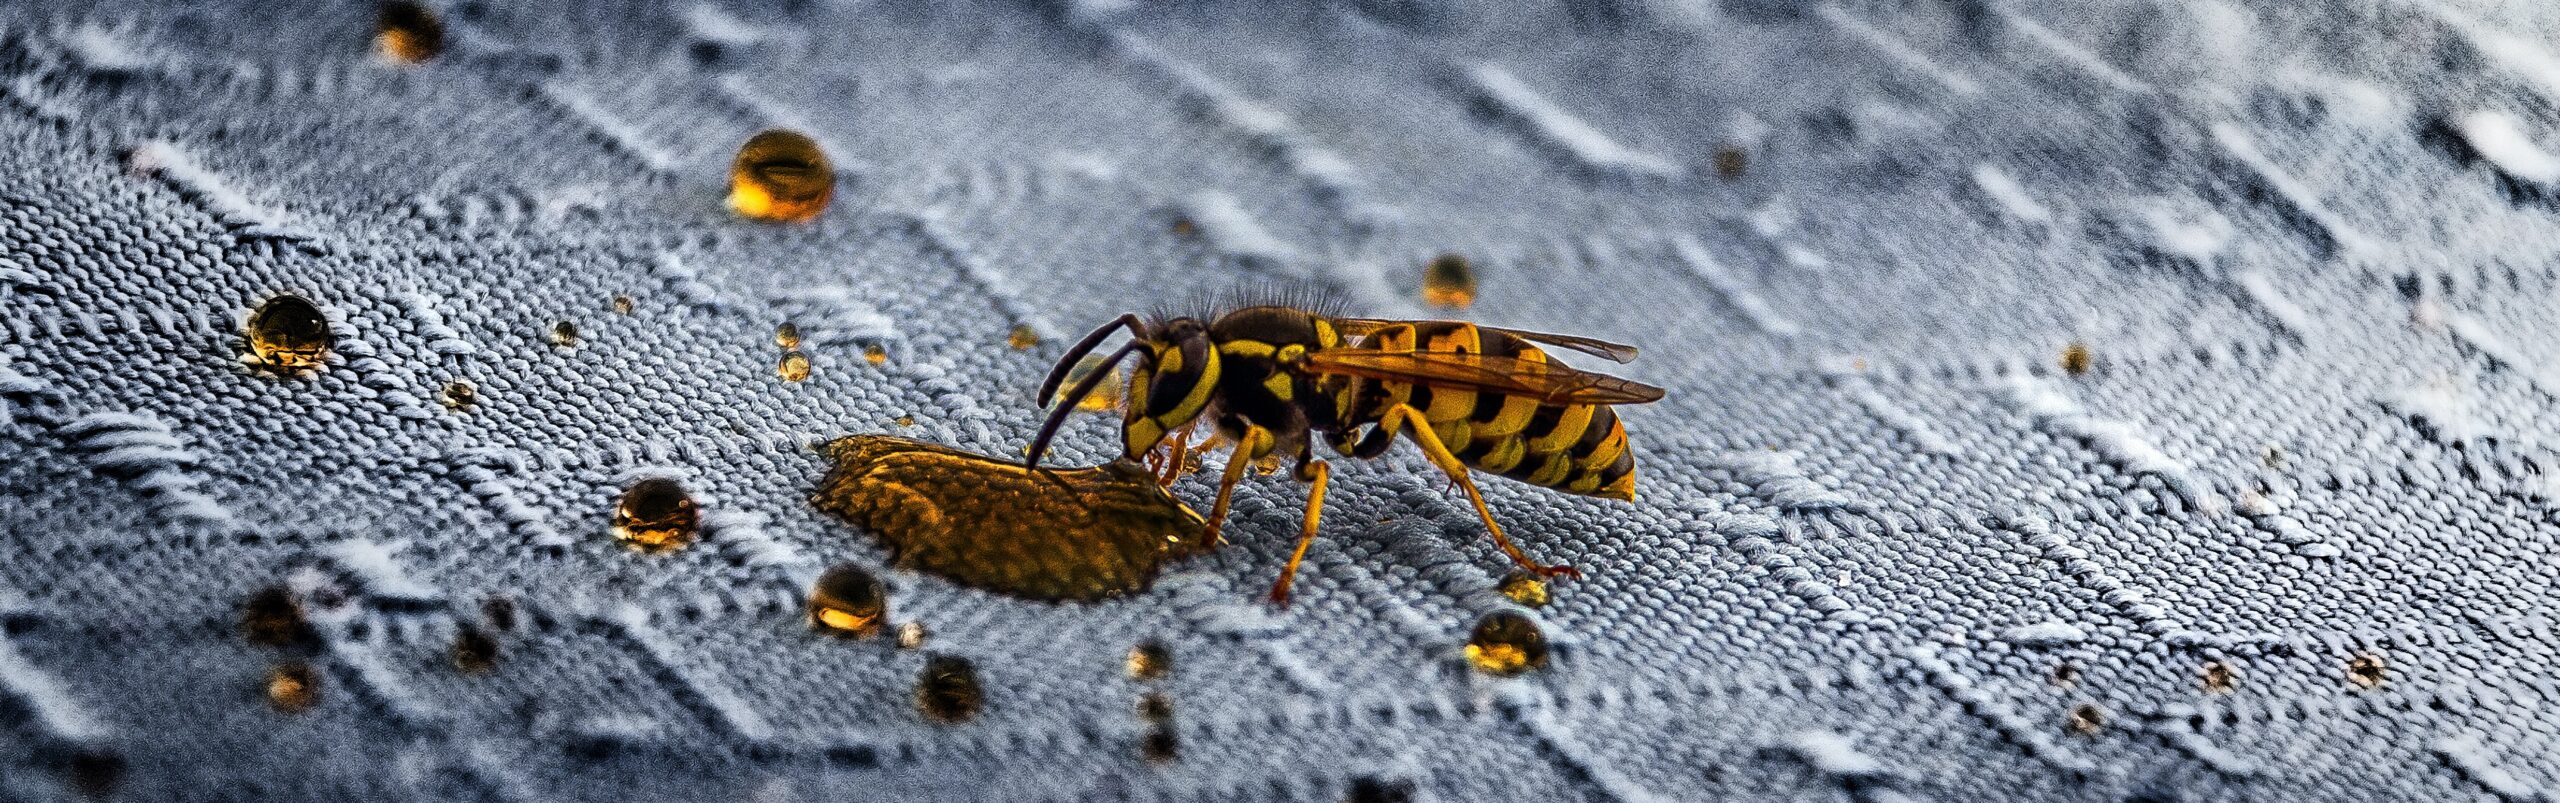 European wasps on the wane, or are they?